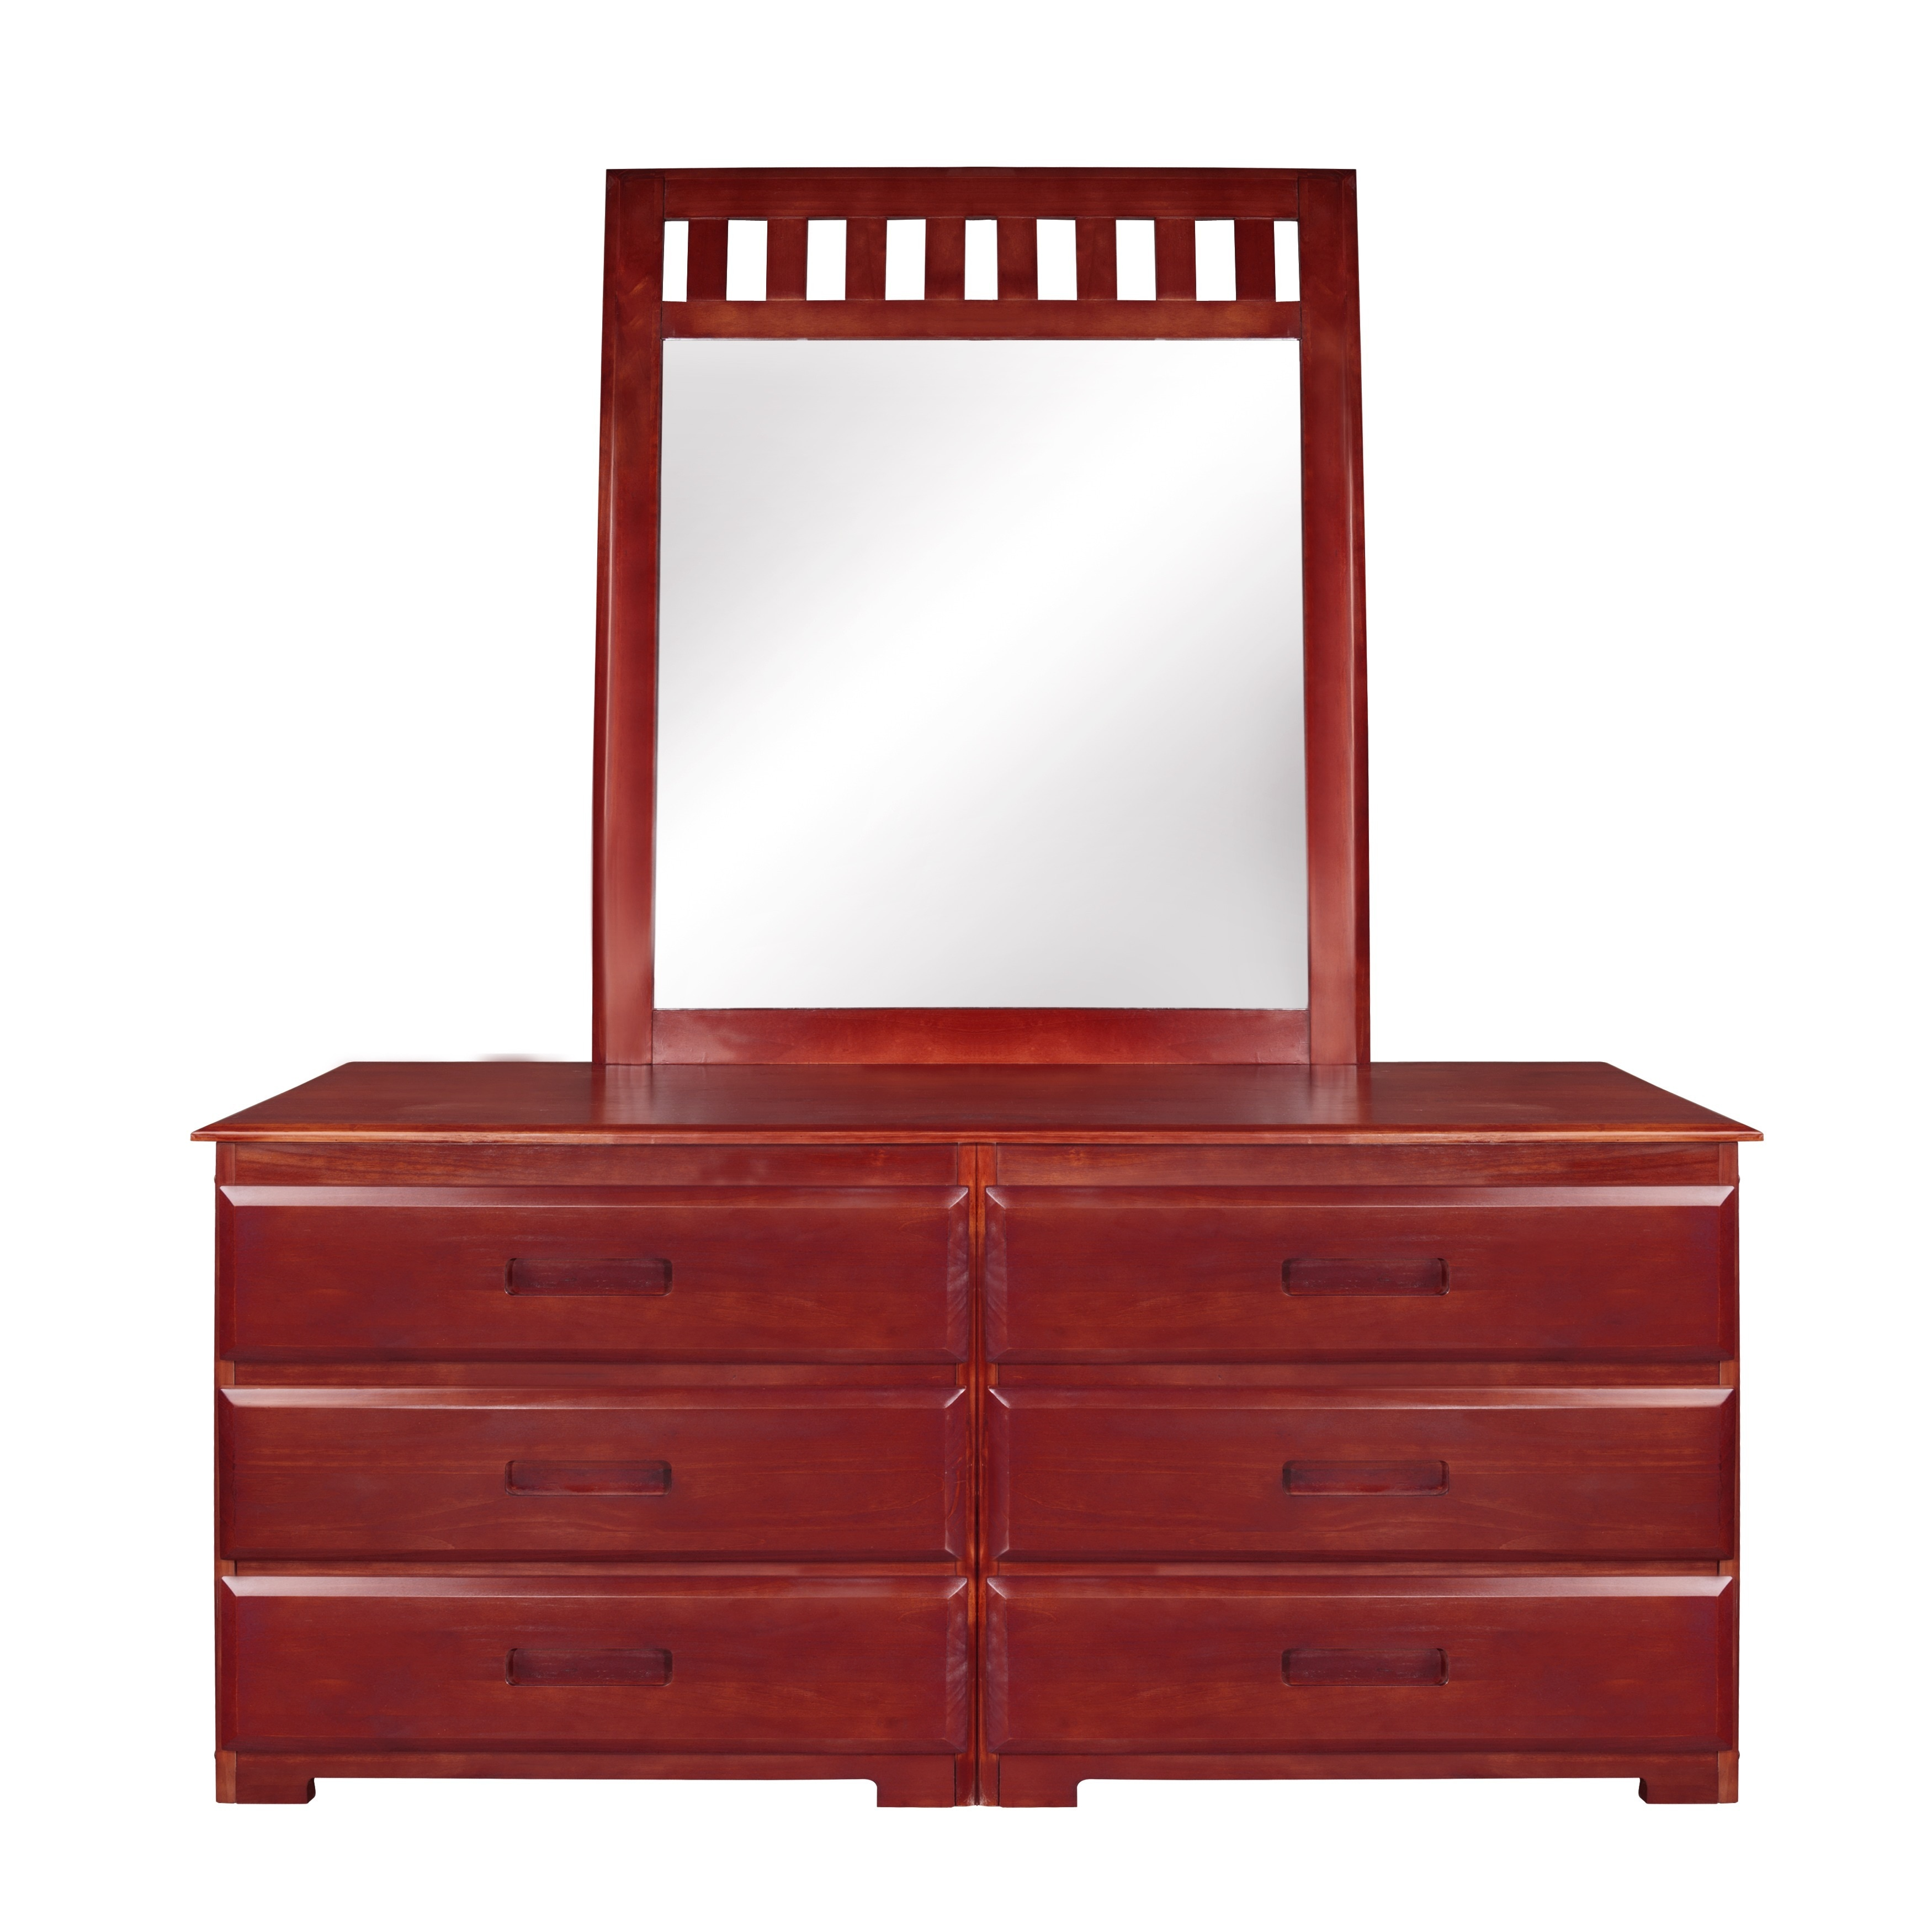 furniture kit results htm the line s drawer dresser our search renovator solid stafford complete unfinished here yield four pine house